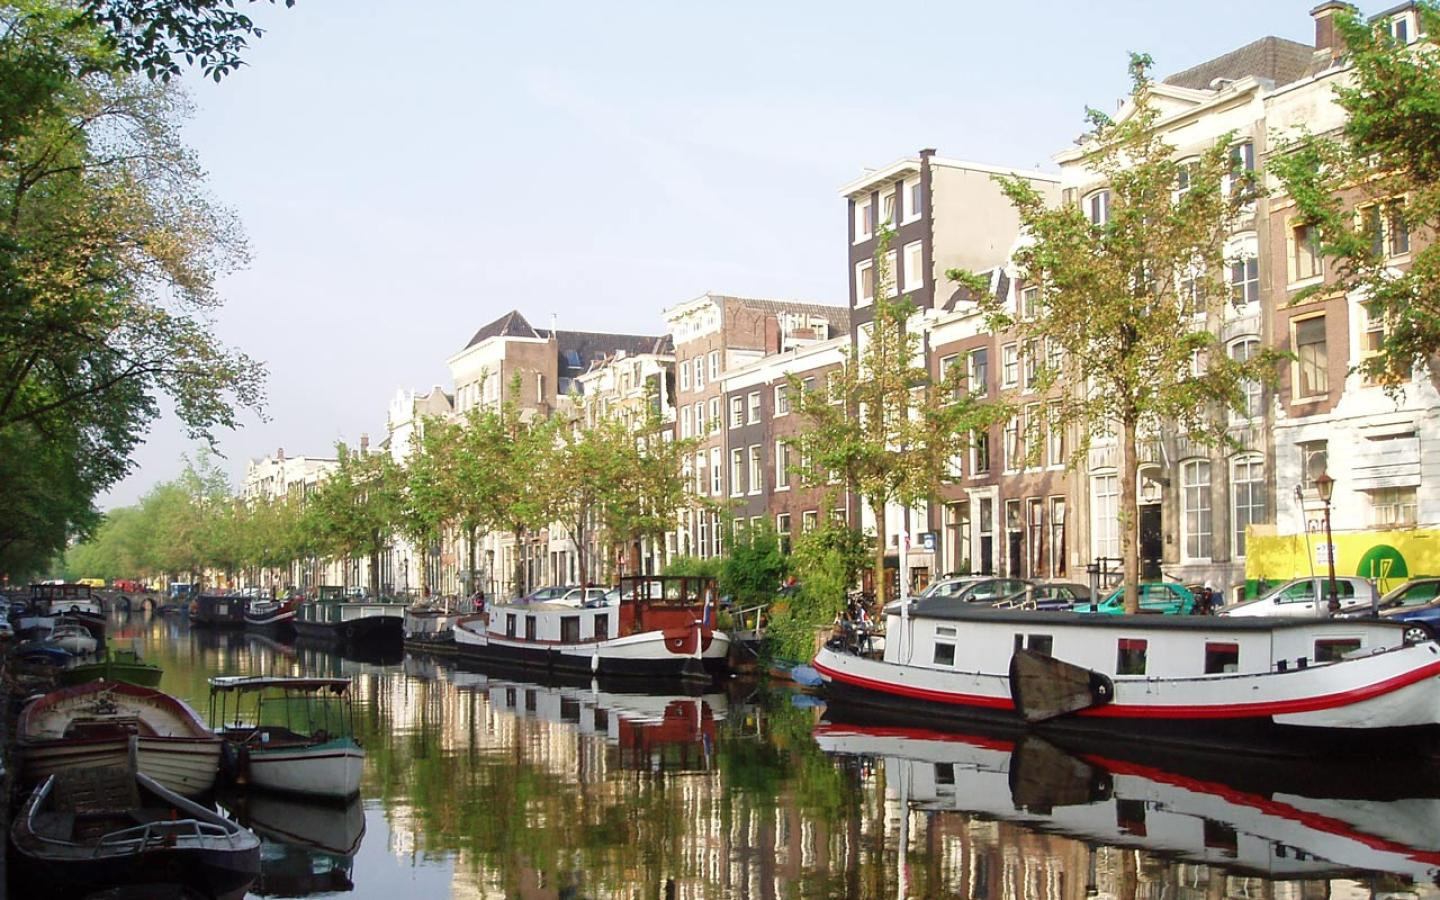 Amsterdam - Canal Wallpaper #3 1440 x 900